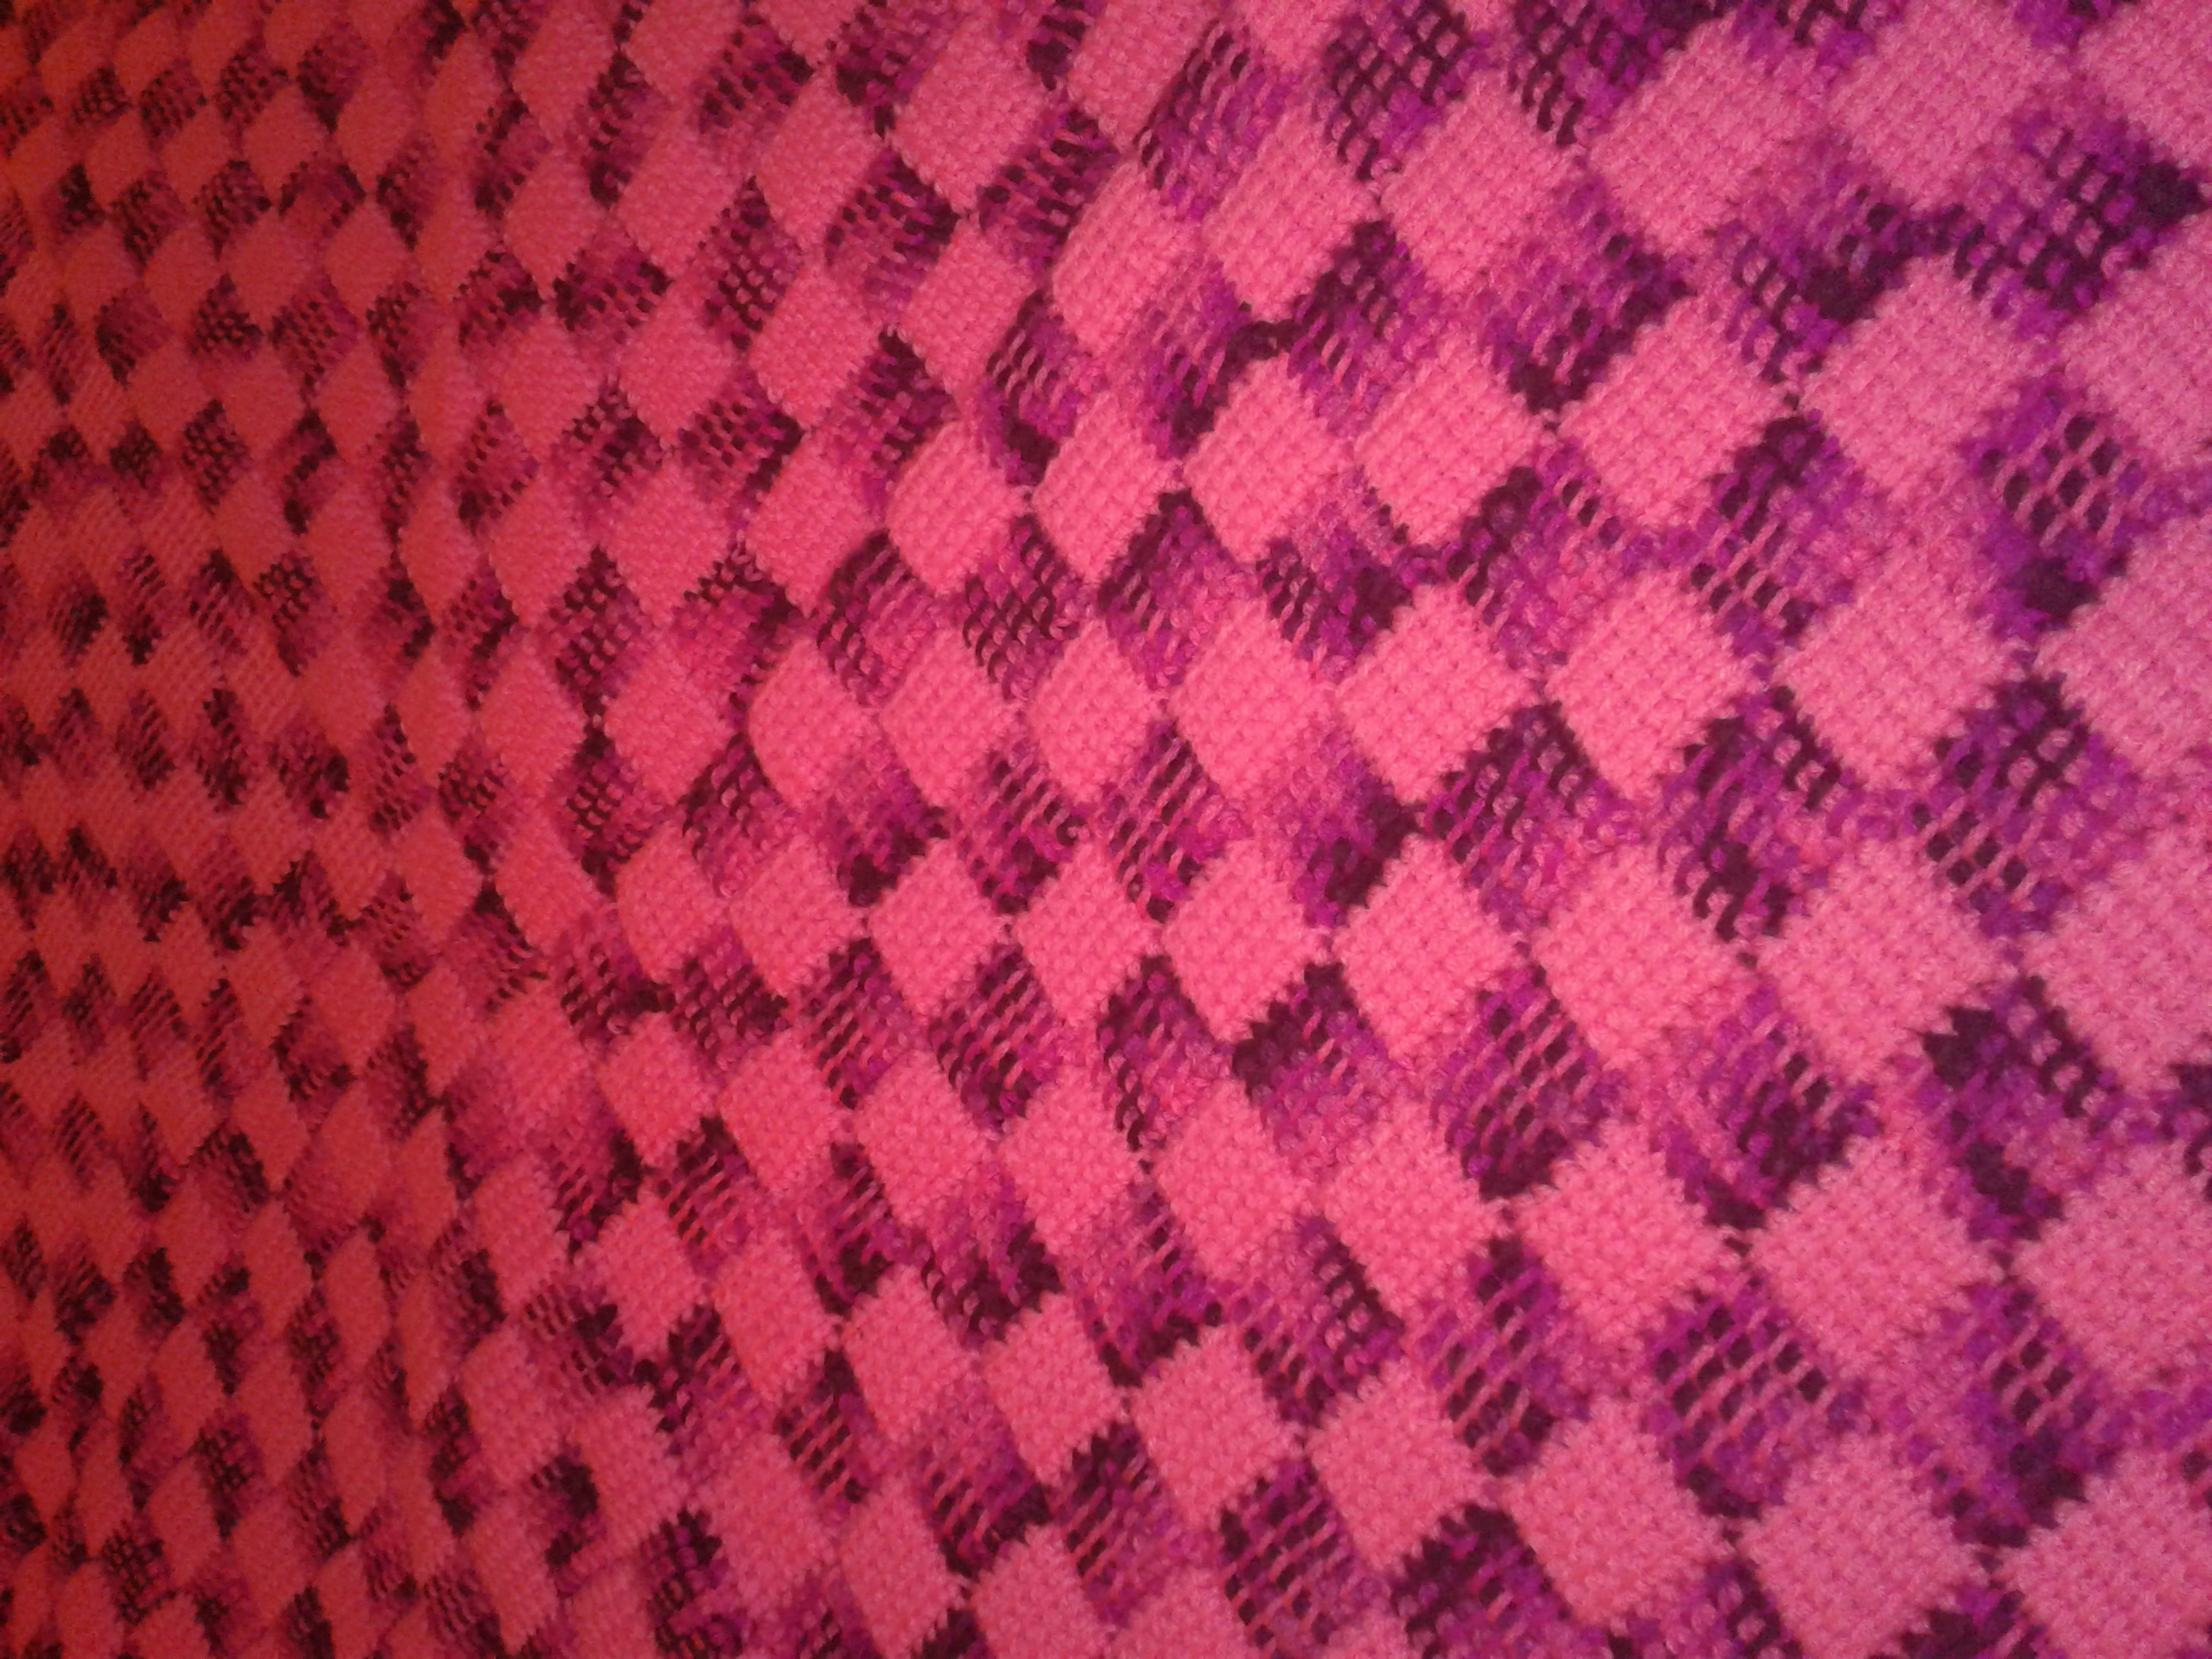 Medium Pink & Variegated Blanket - Entre